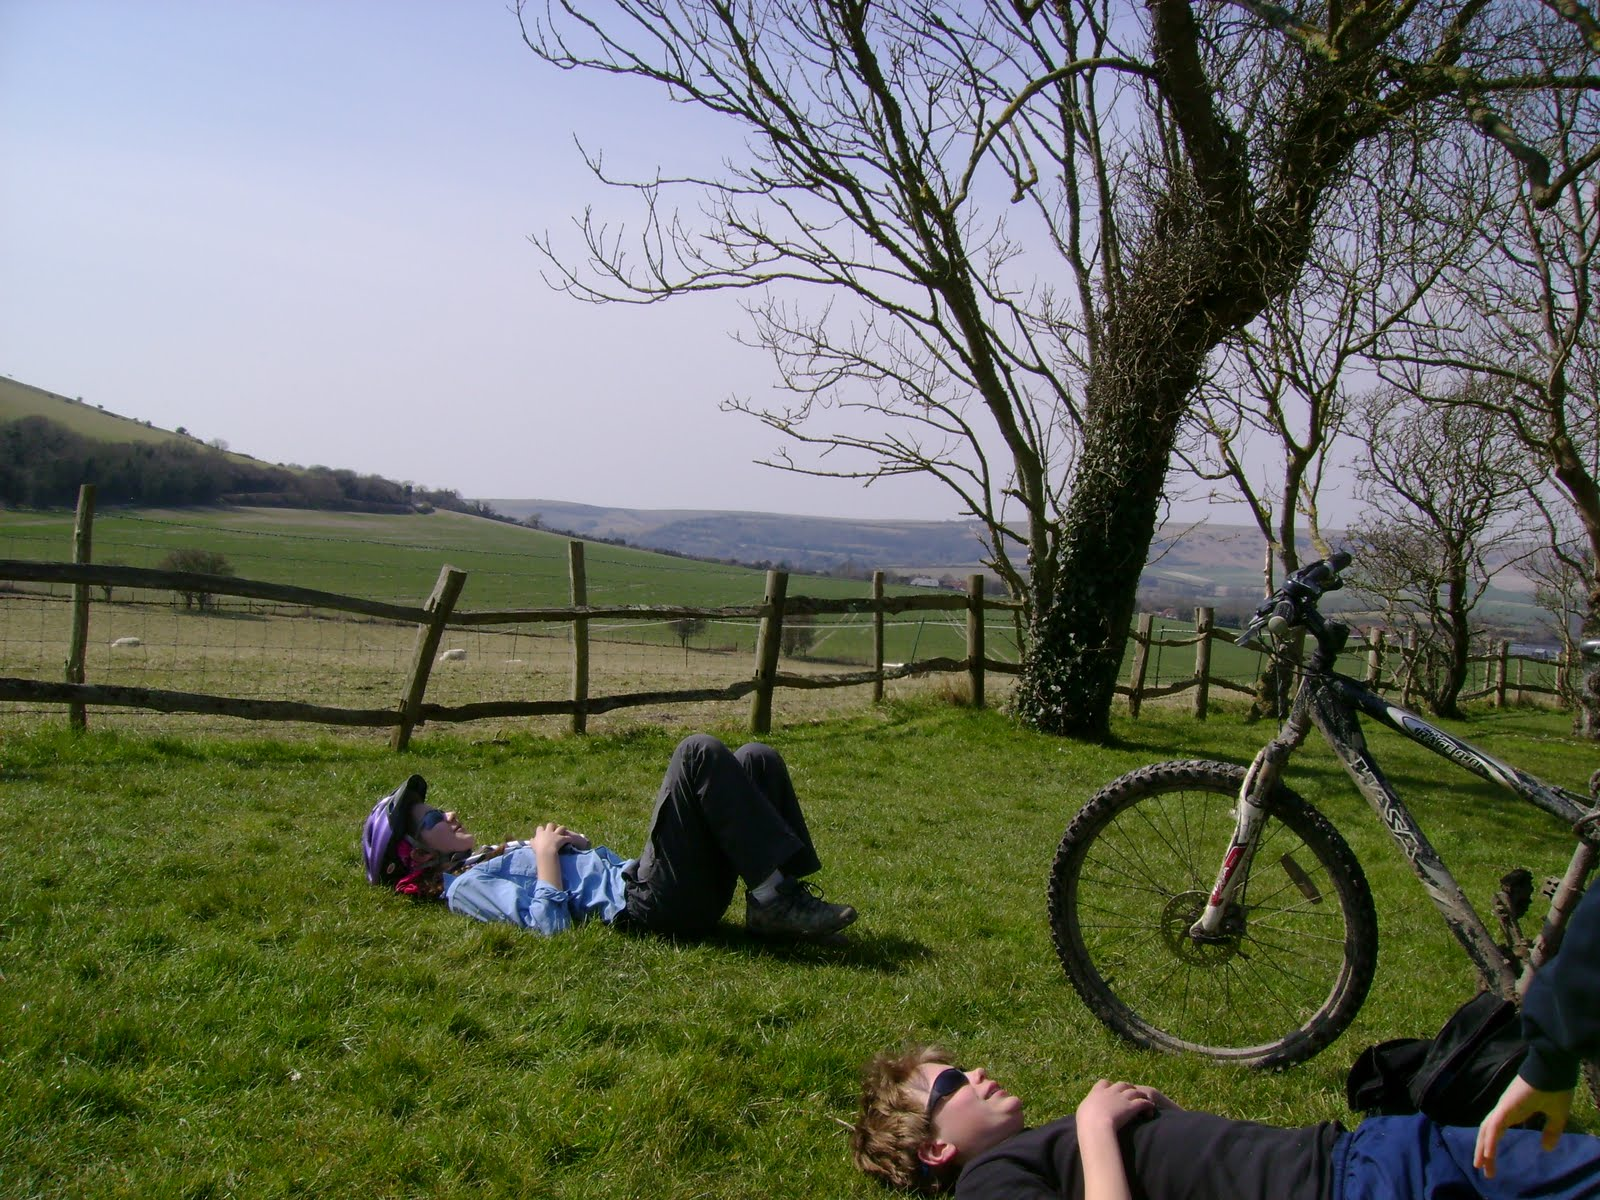 Even the scenery was no match for a lie-down by lunchtime on day two.